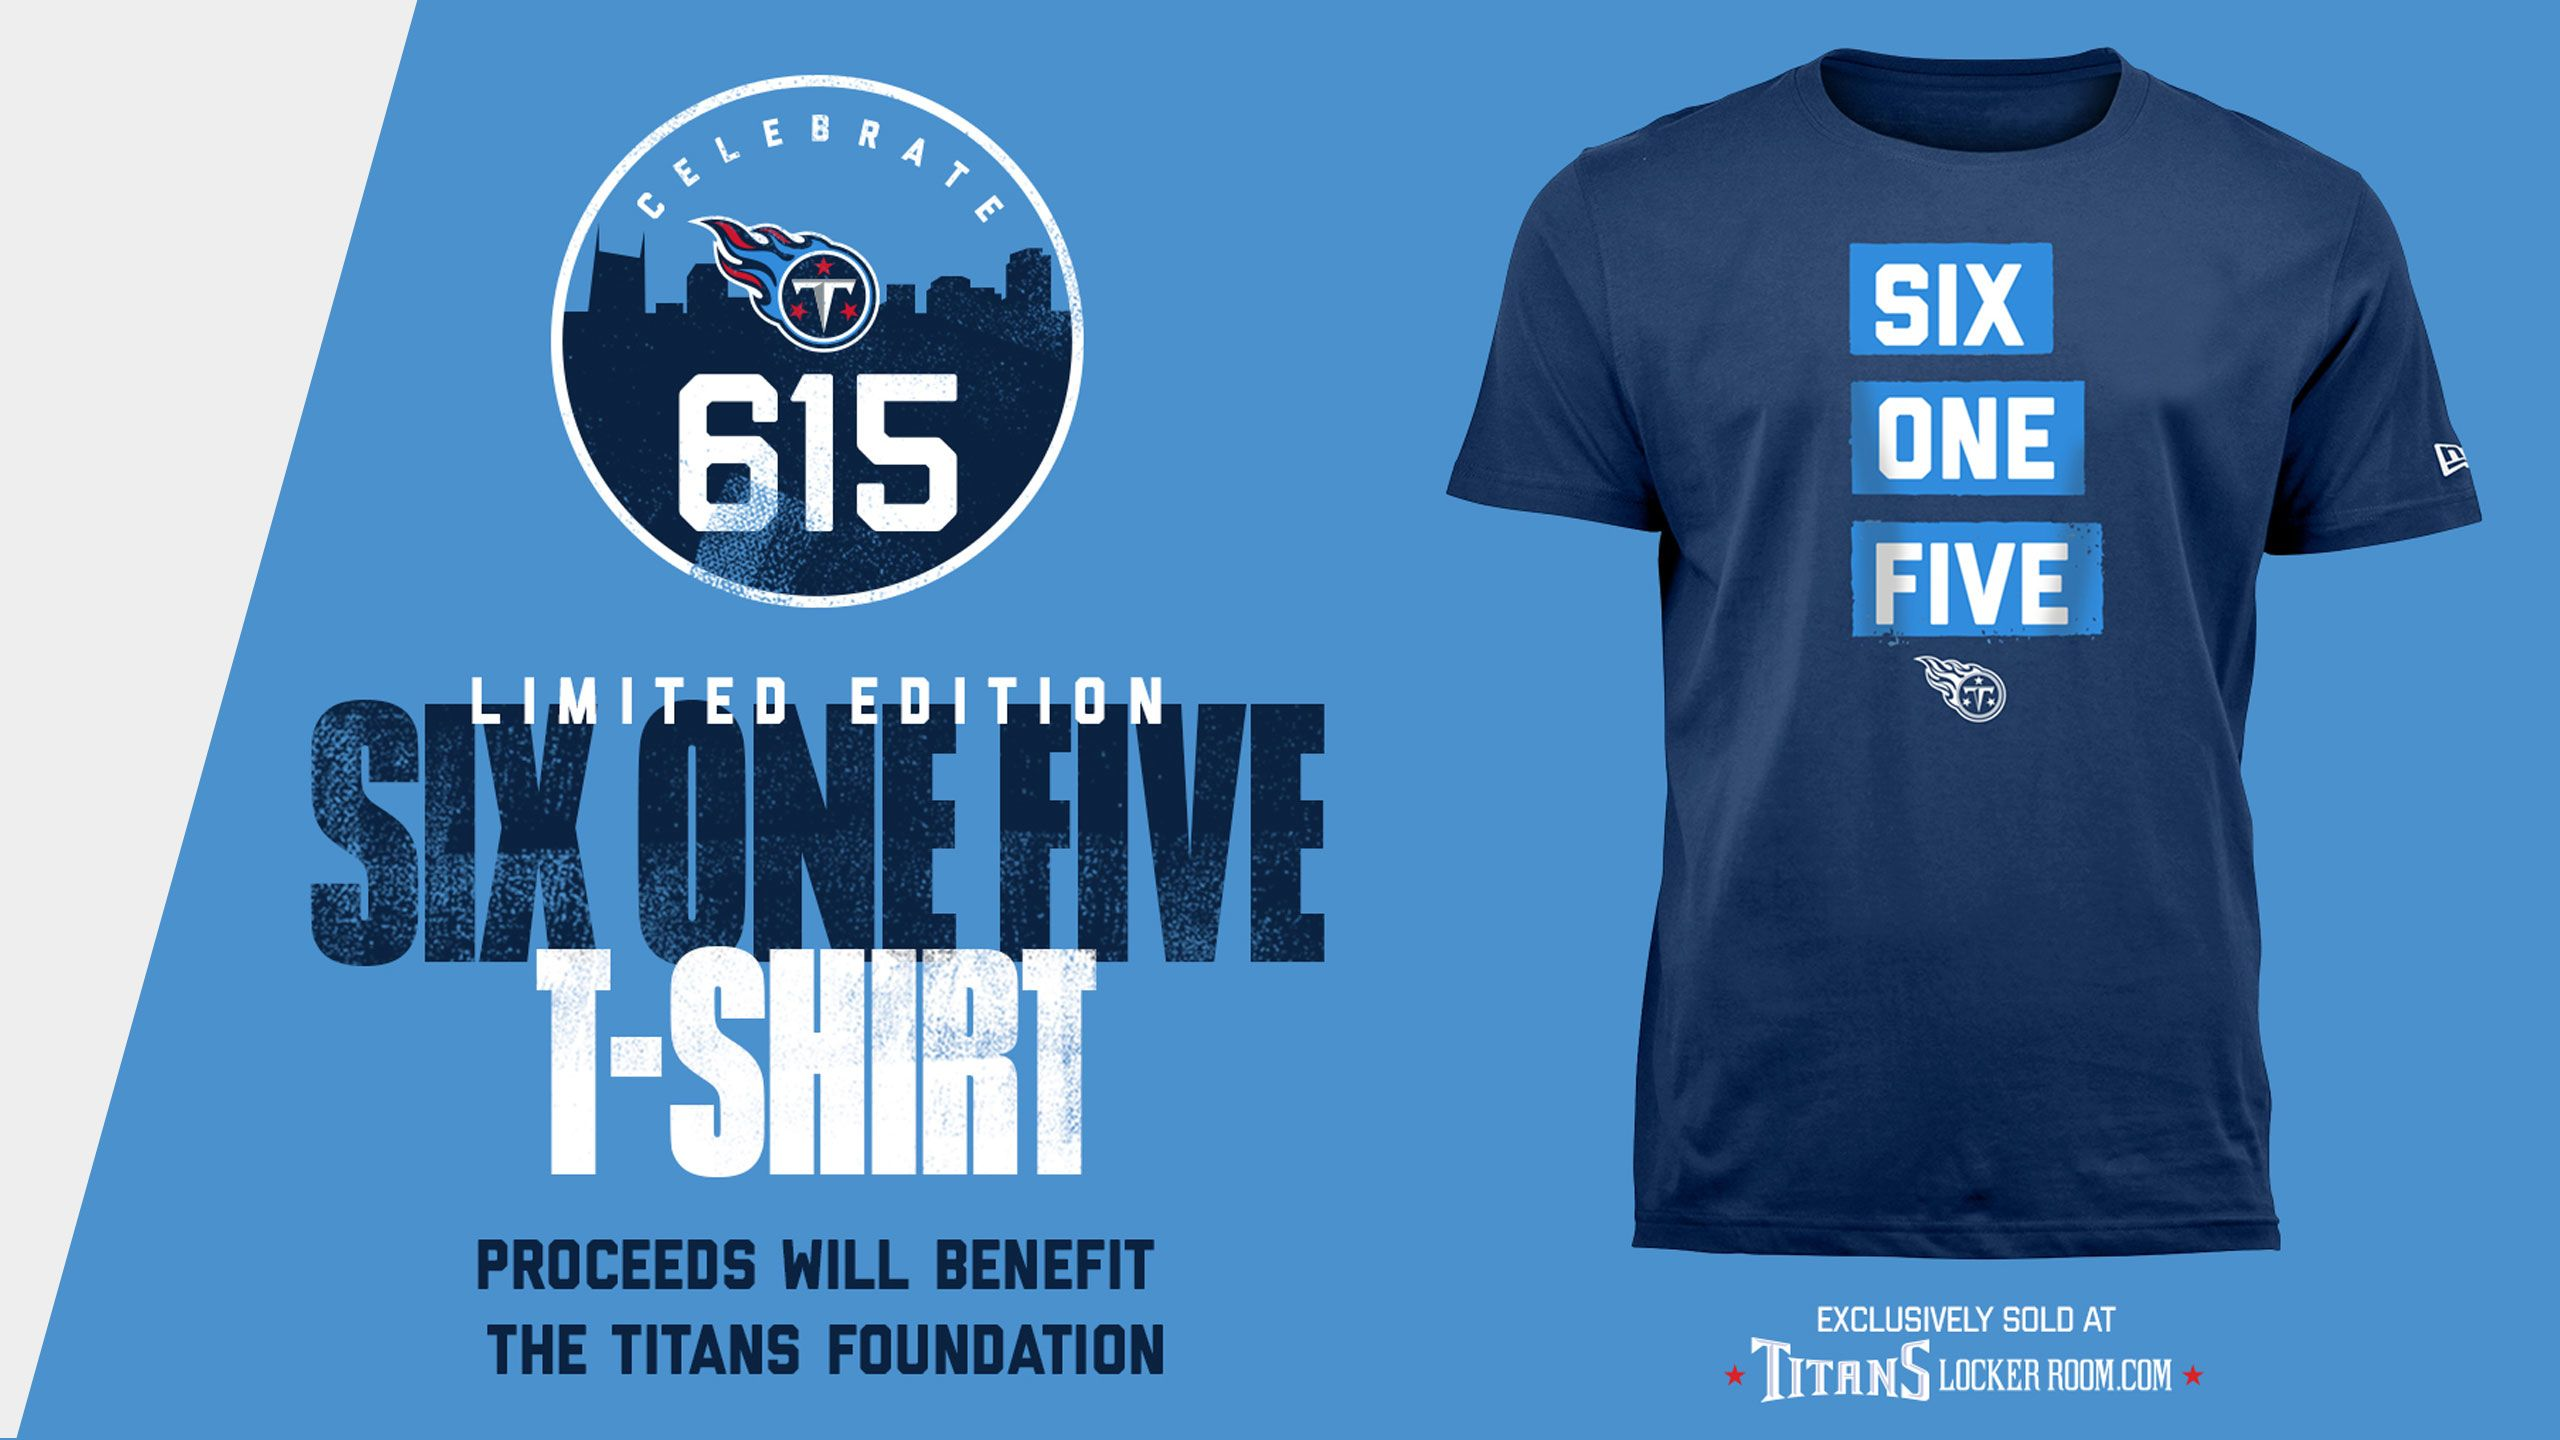 Limited Edition 615 T-Shirt